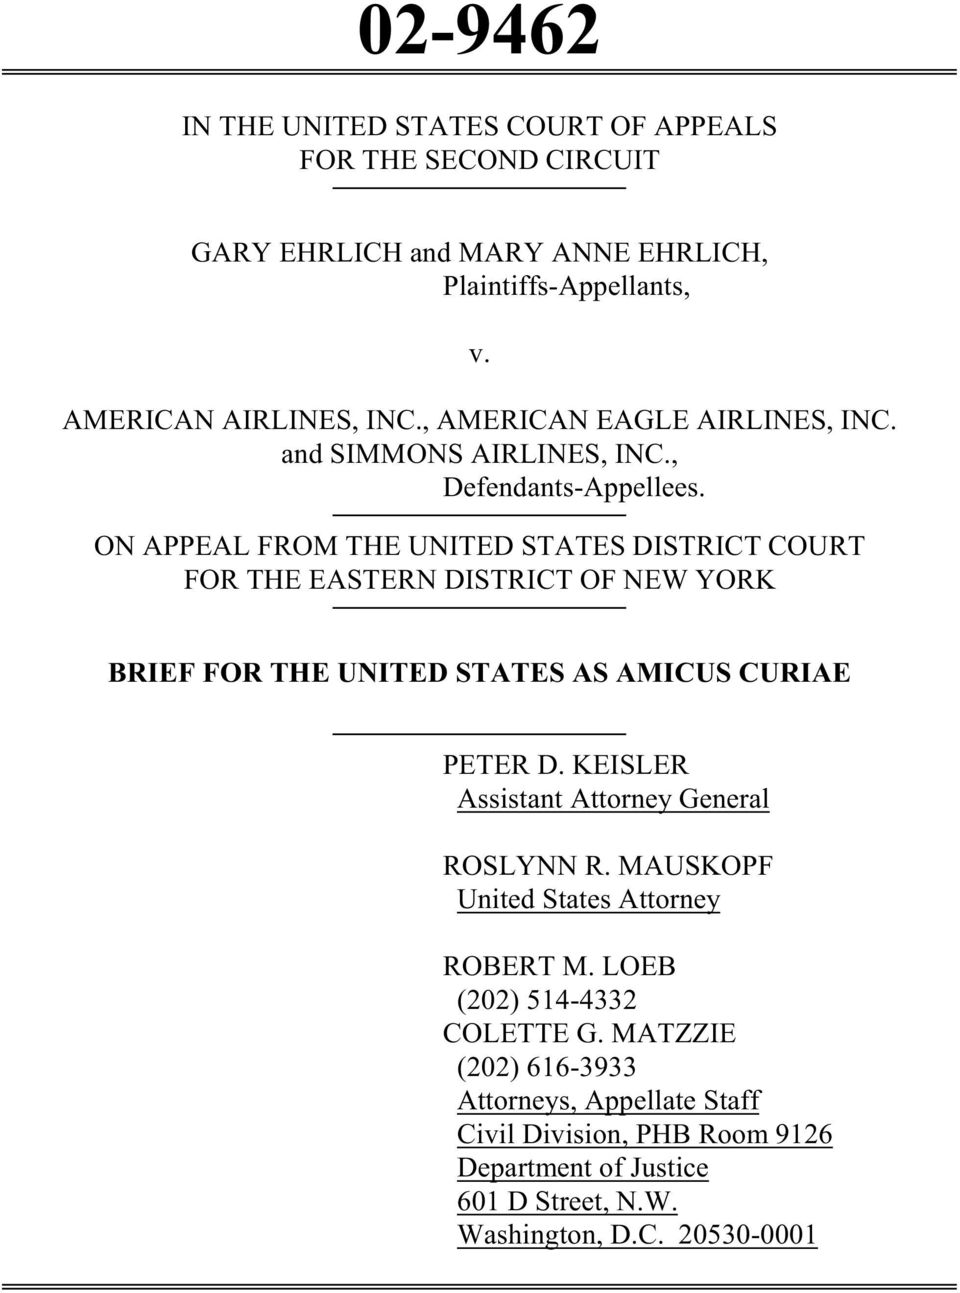 ON APPEAL FROM THE UNITED STATES DISTRICT COURT FOR THE EASTERN DISTRICT OF NEW YORK BRIEF FOR THE UNITED STATES AS AMICUS CURIAE PETER D.